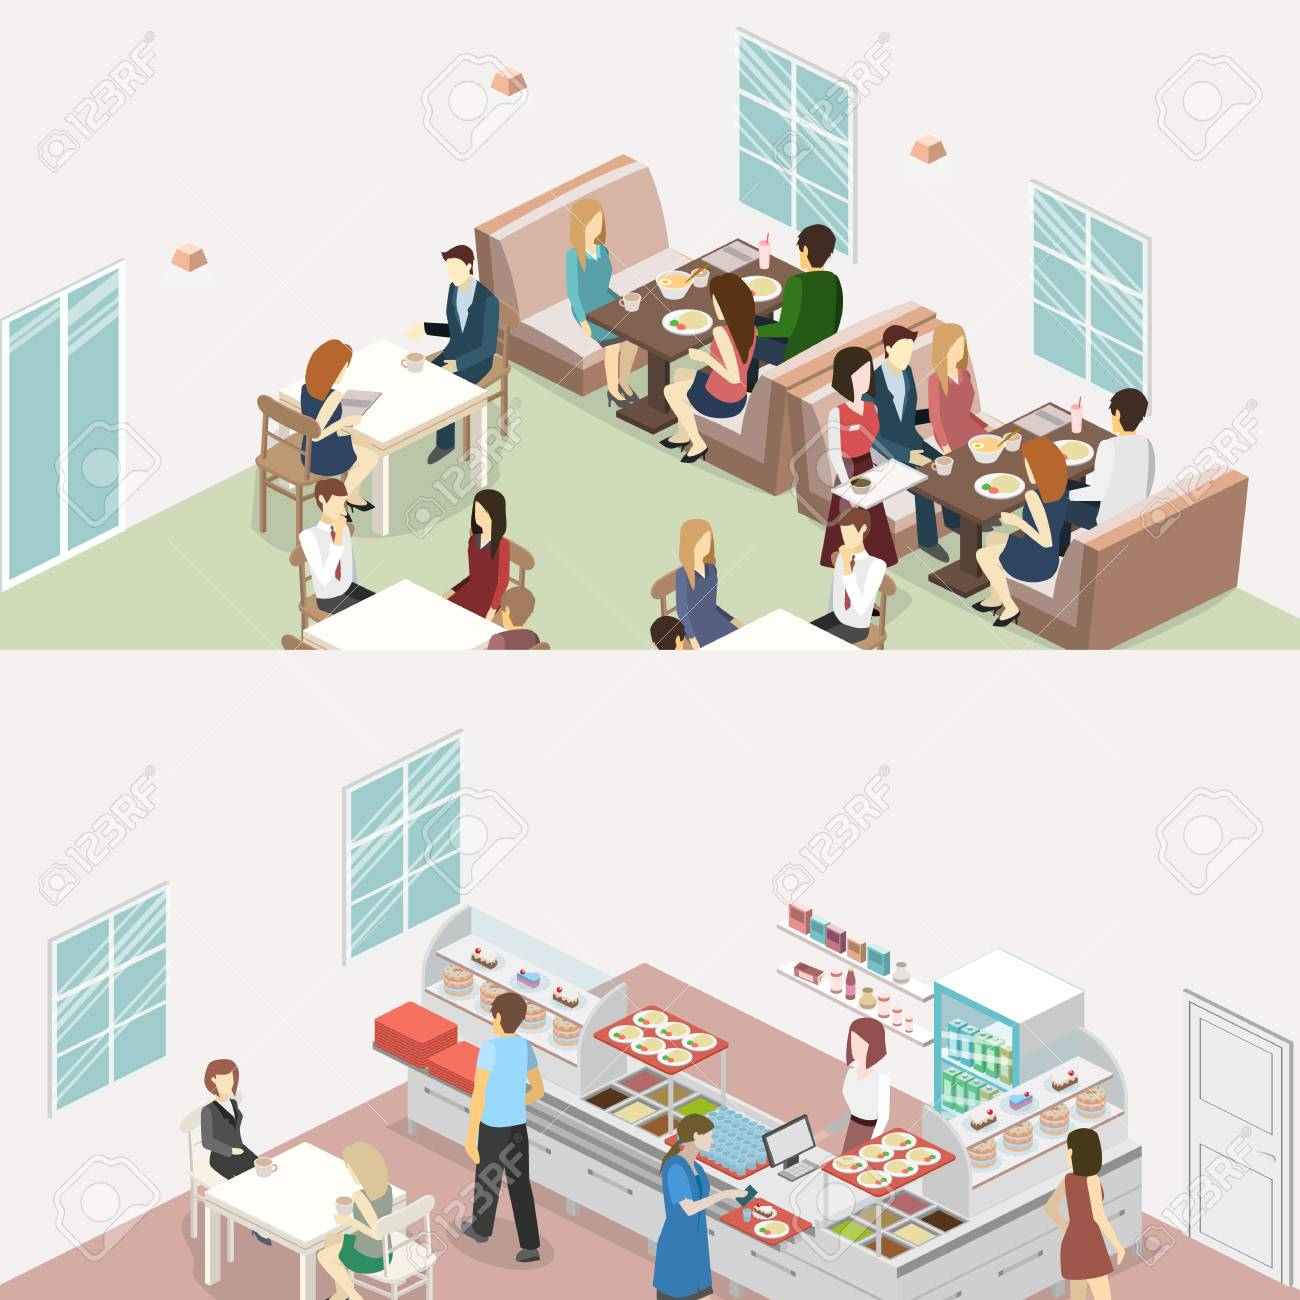 Isometric Flat 3d Concept Vector Interior Of Sweet Shop Cafe Royalty Free Cliparts Vectors And Stock Illustration Image 89092382